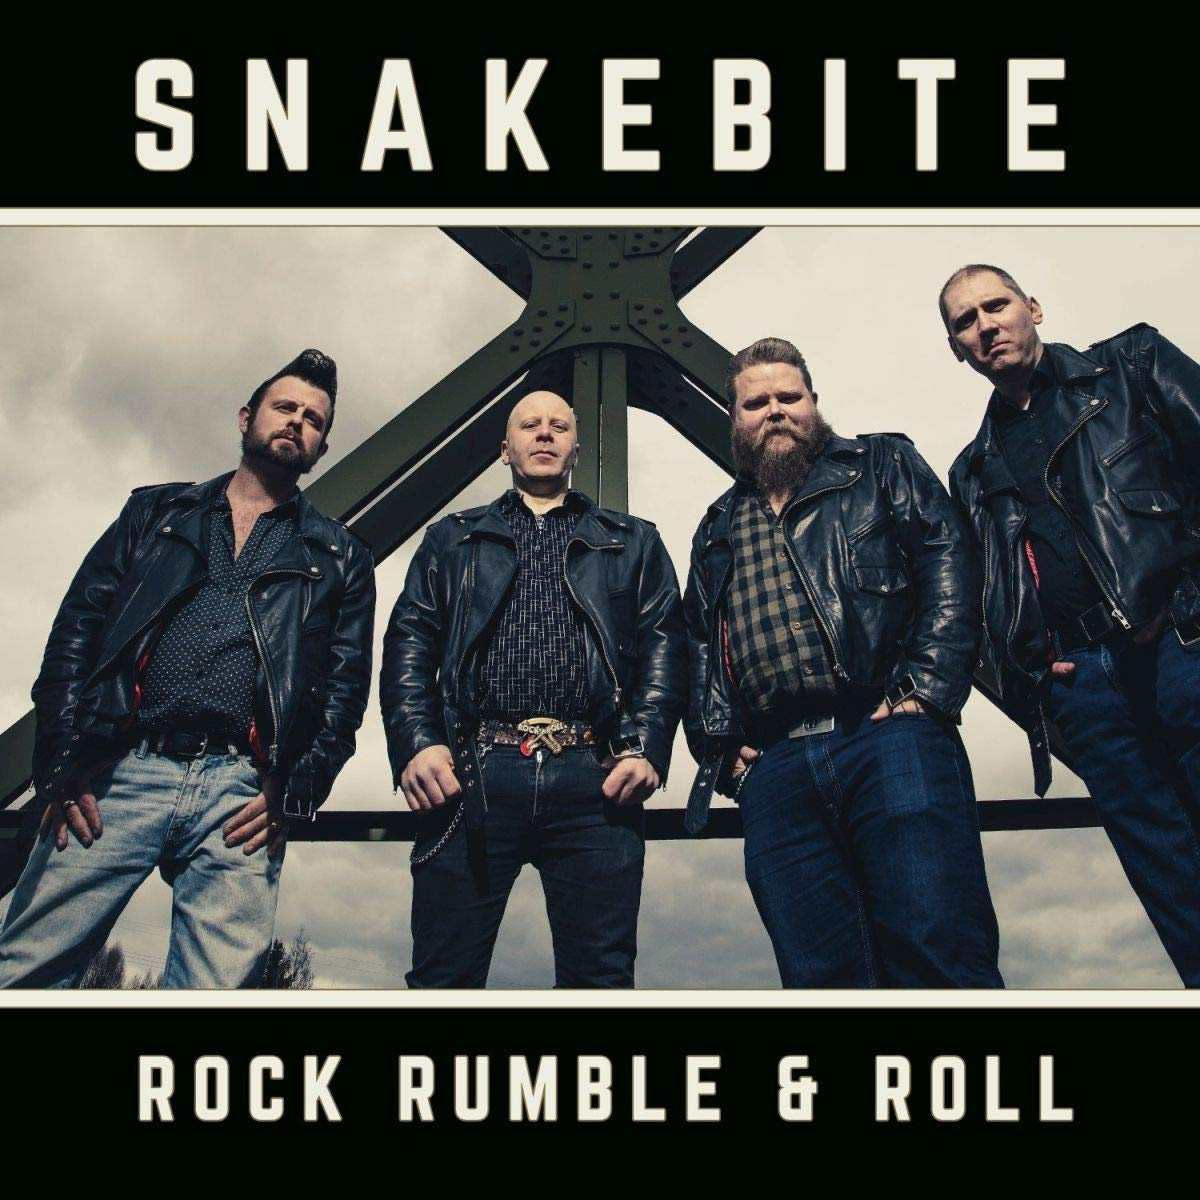 Snakebite – Rock Rumble & Roll (2019) [FLAC]